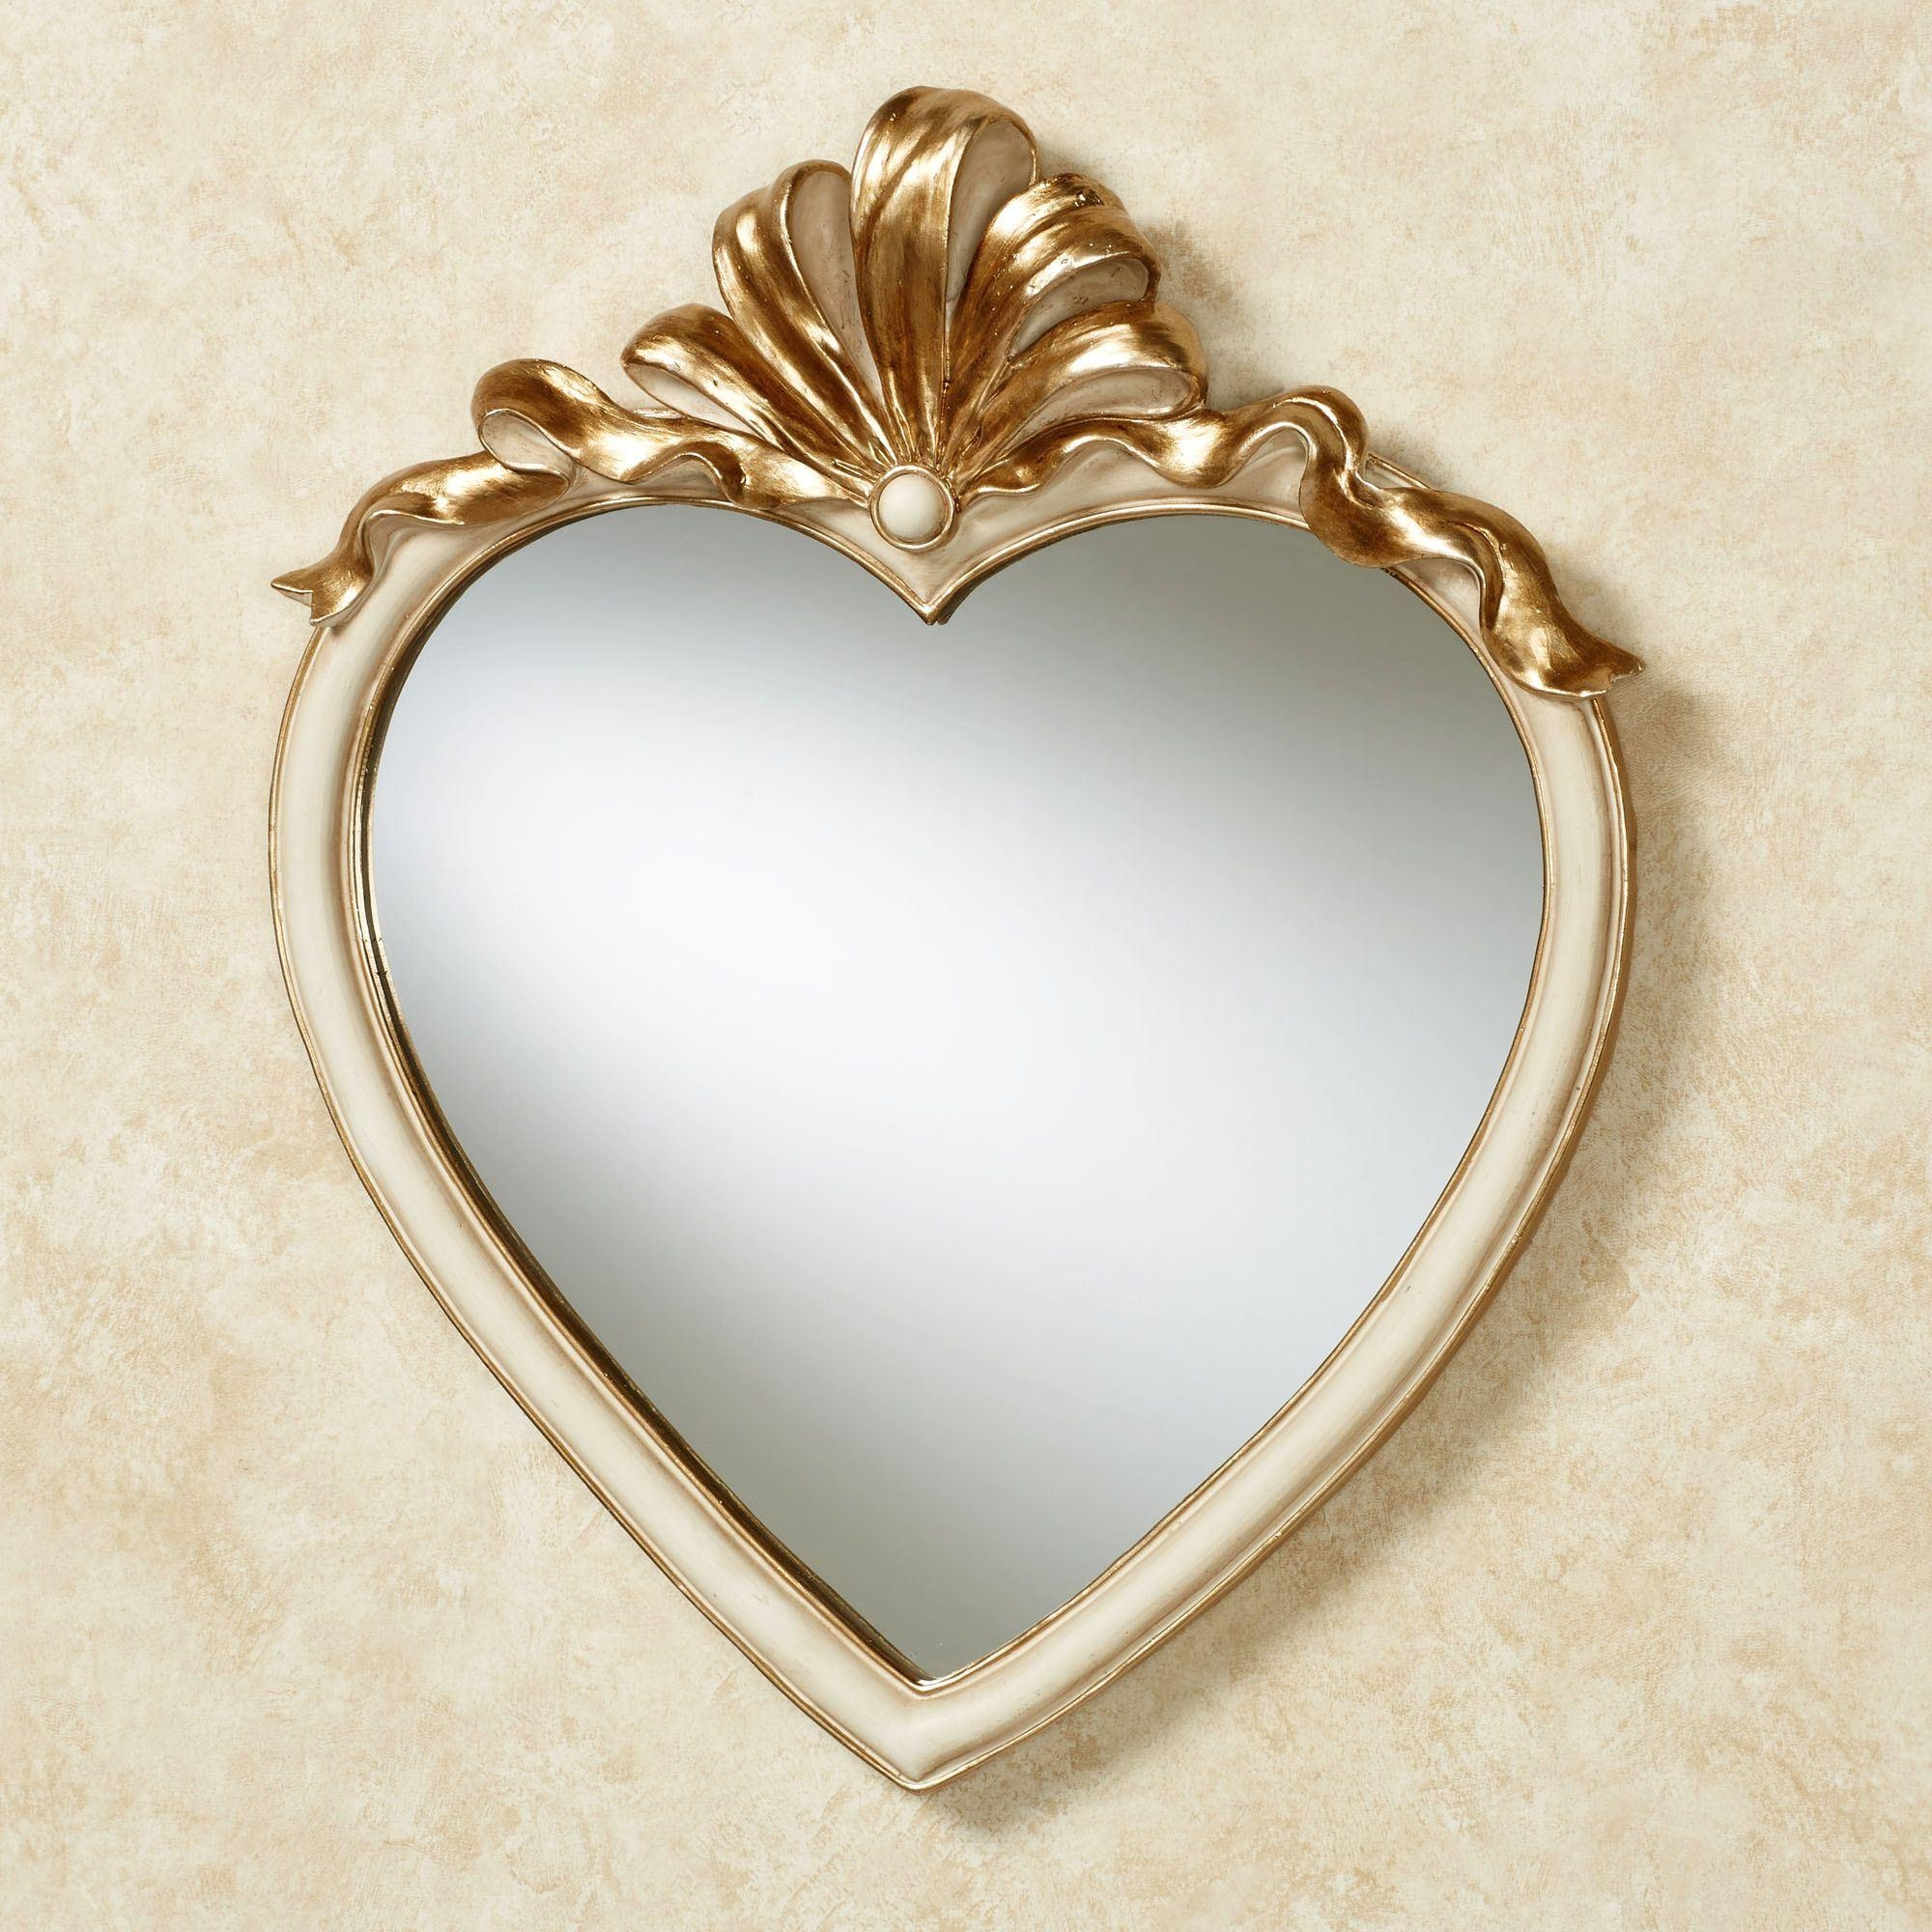 Leandra Heart Shaped Wall Mirror Intended For Heart Shaped Mirrors For Walls (Image 14 of 20)